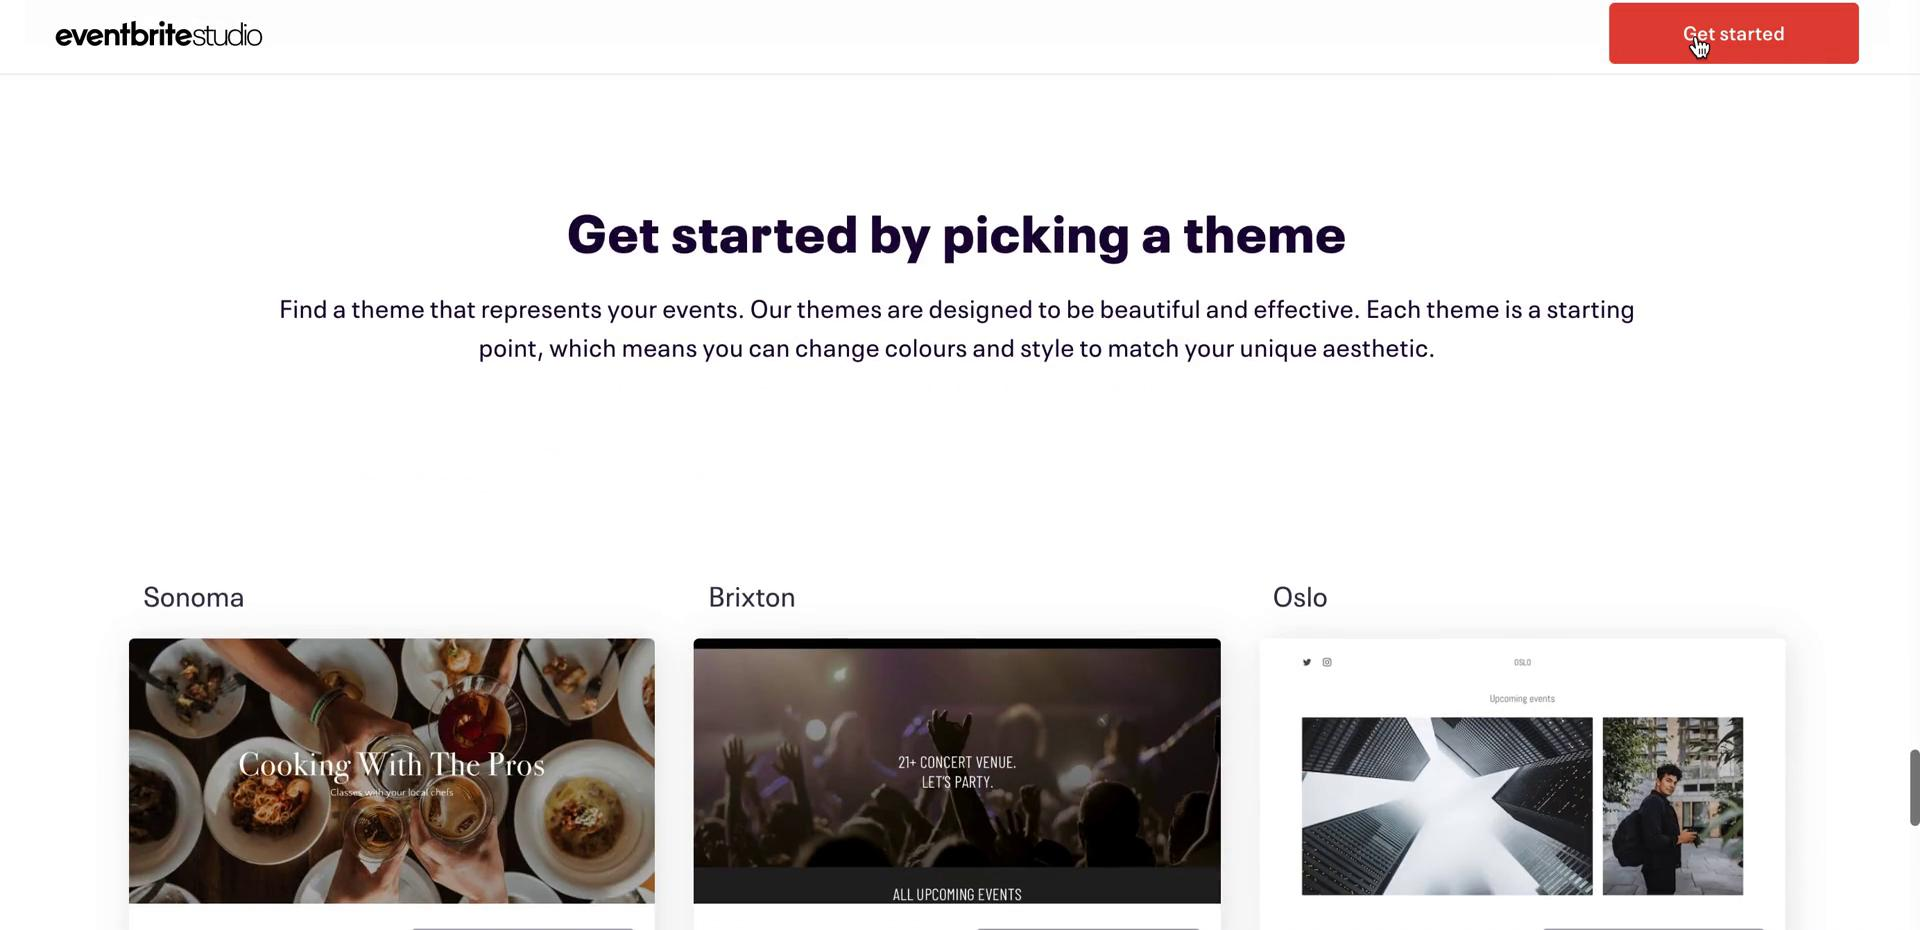 Screenshot of Select theme during Creating a website on Eventbrite user flow